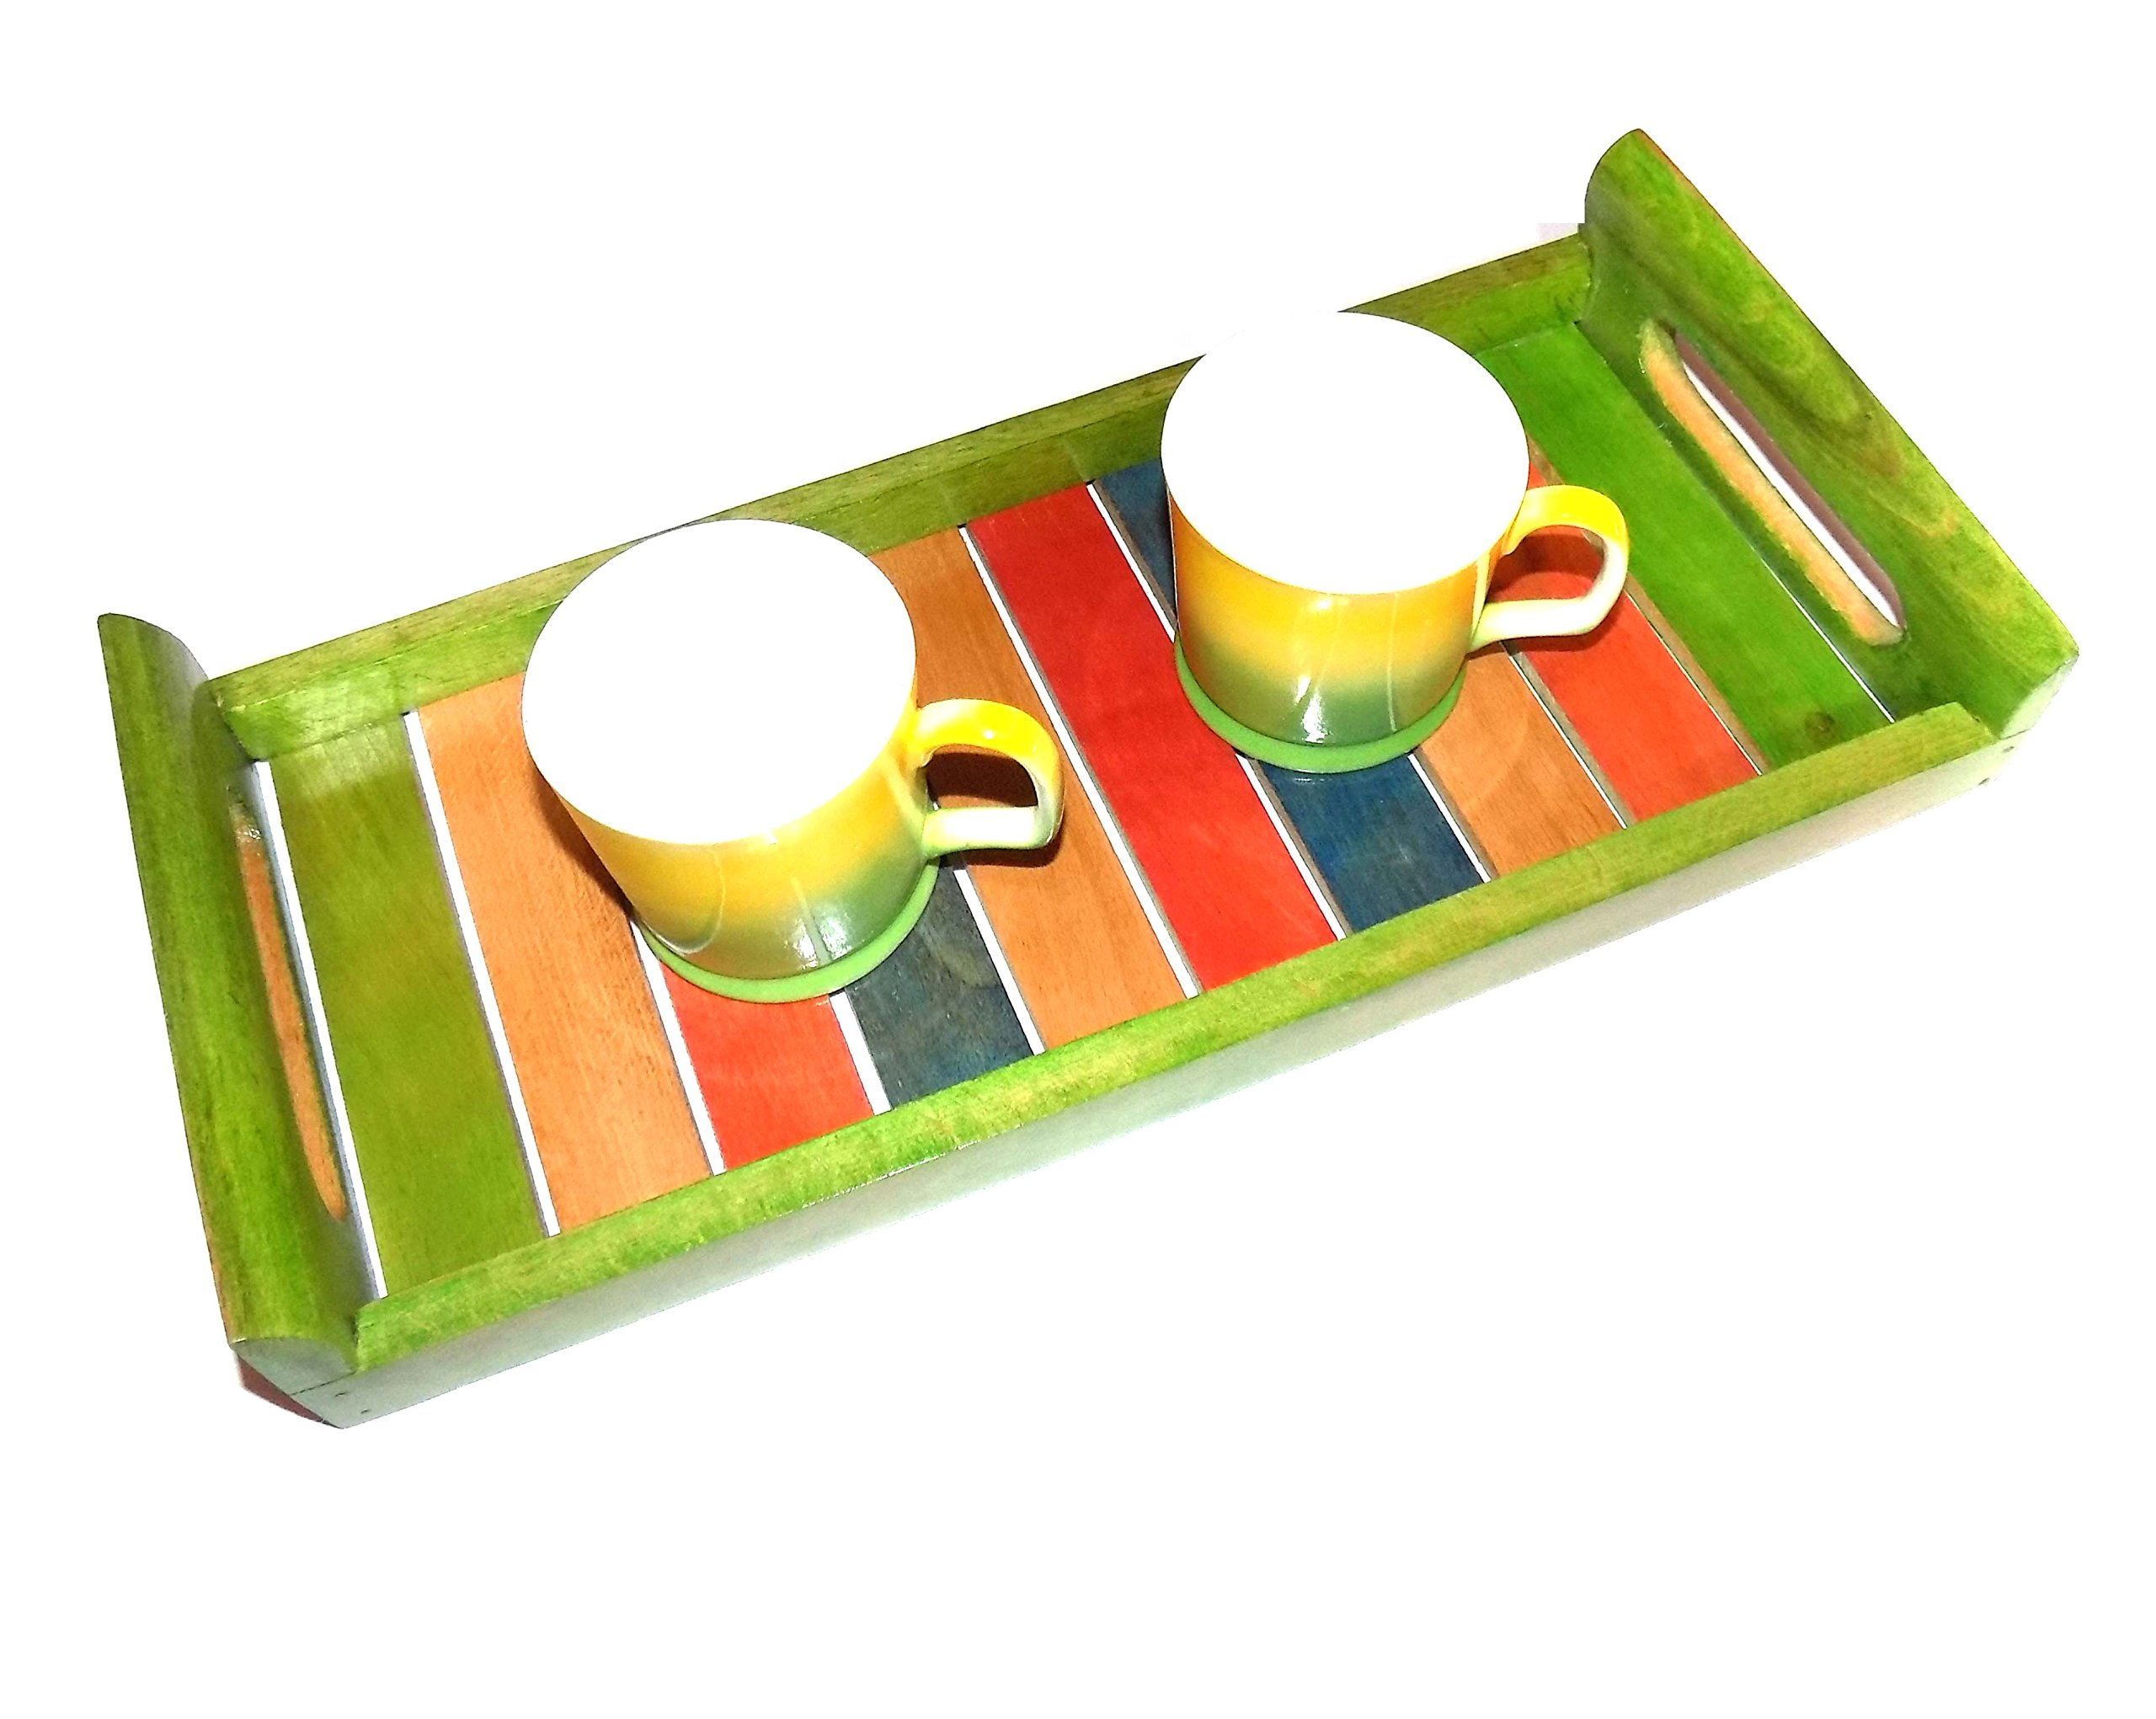 Multicoloured Wooden Tray Blue,yellow green red -Serving Tray Platter Breakfast Tray Decorative Tray Table Top Bed by naaz wood arts